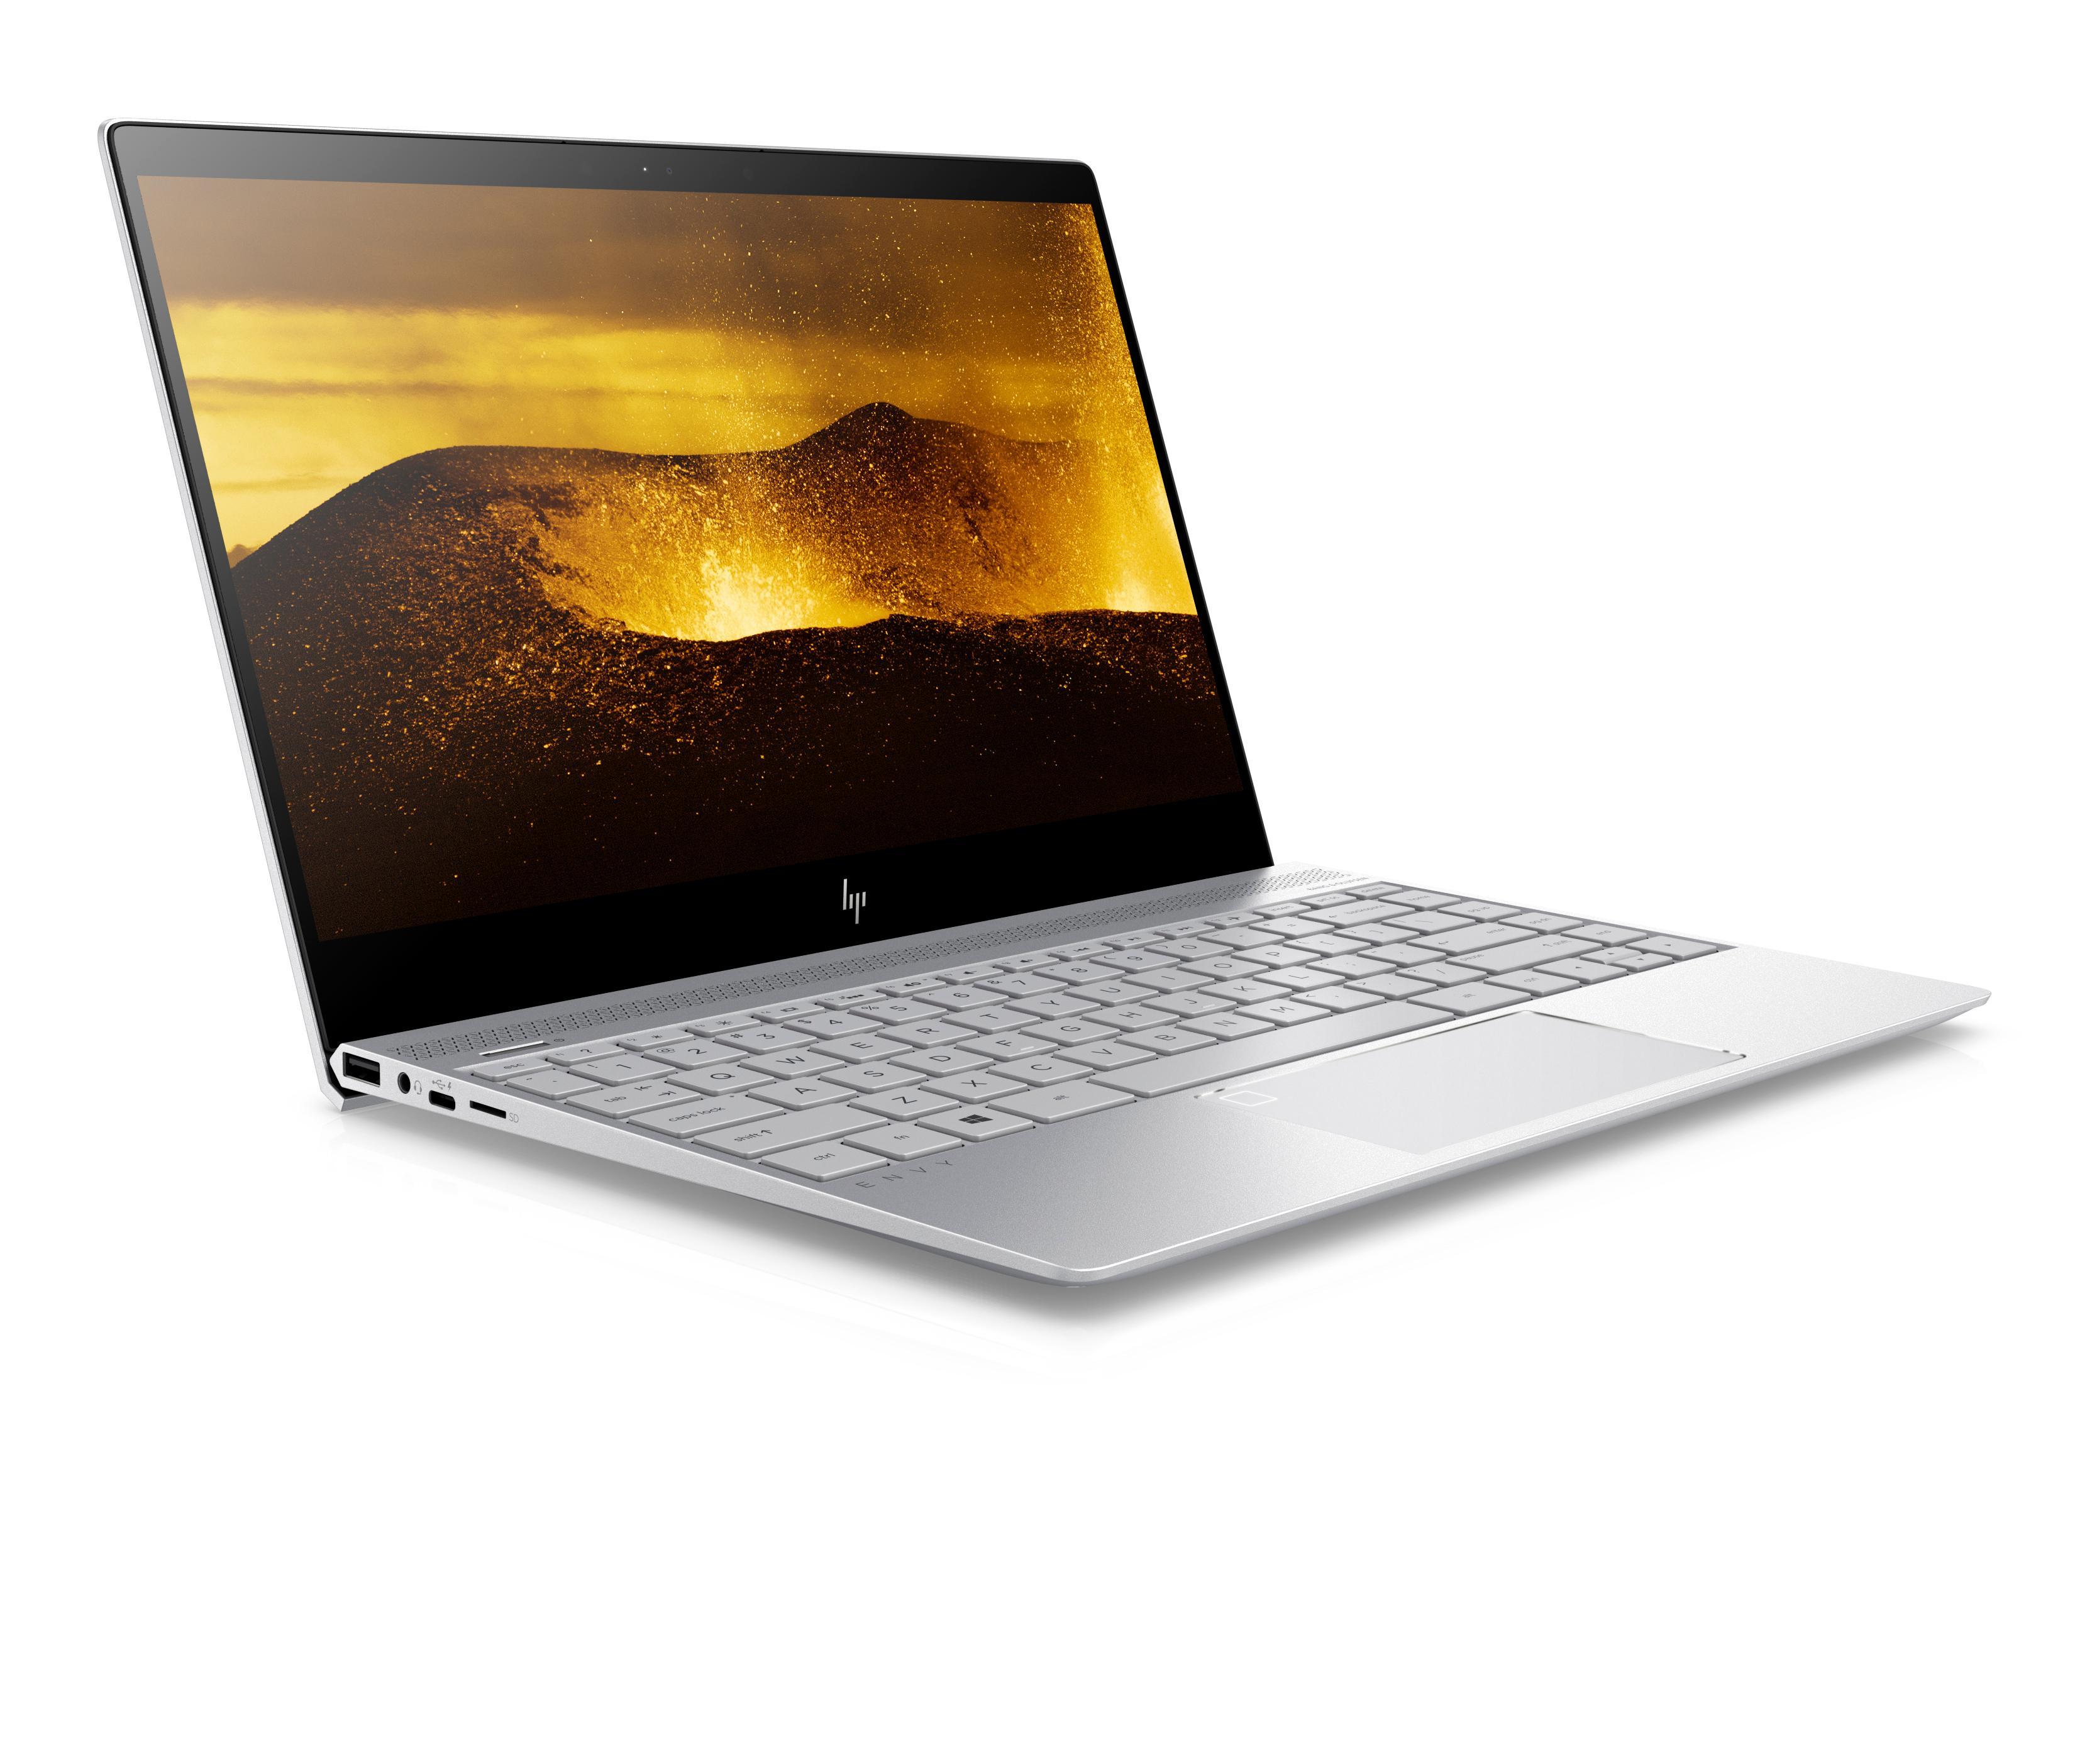 Hp Envy 13 Ad015na 13 3 Inch Fhd Laptop Intel Core I7